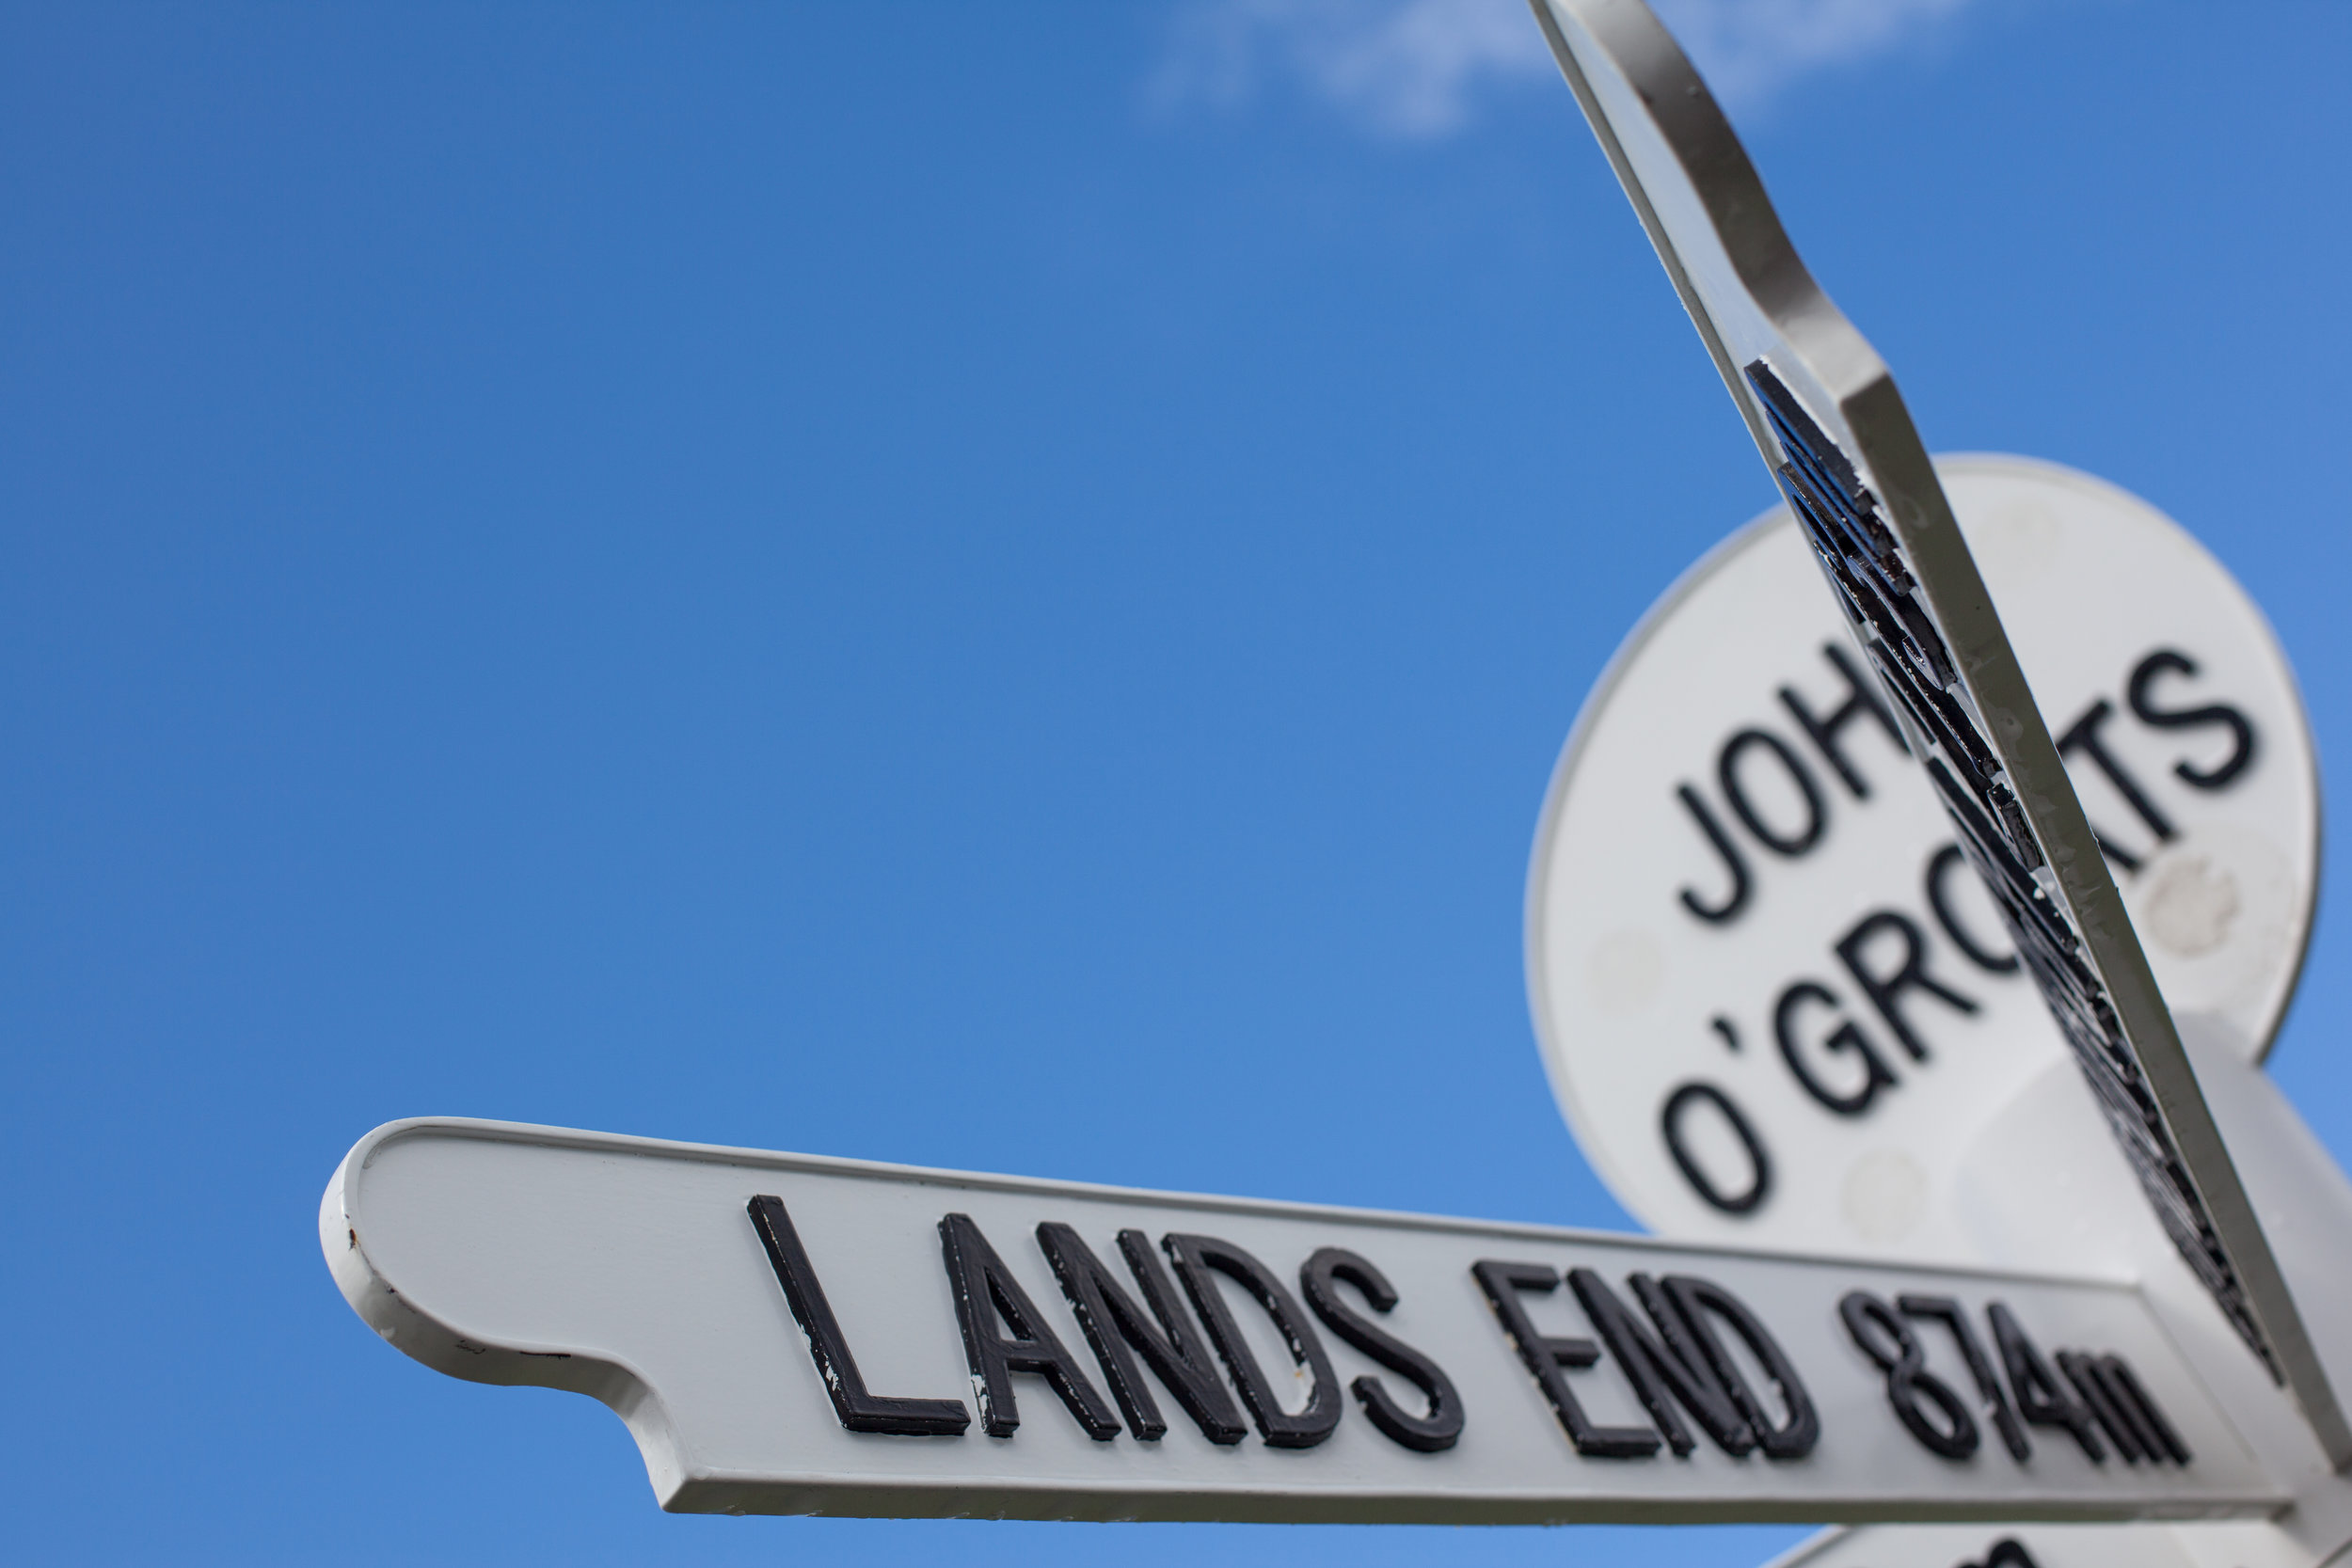 The sign at John O'Groats showing the distance to Lands End.